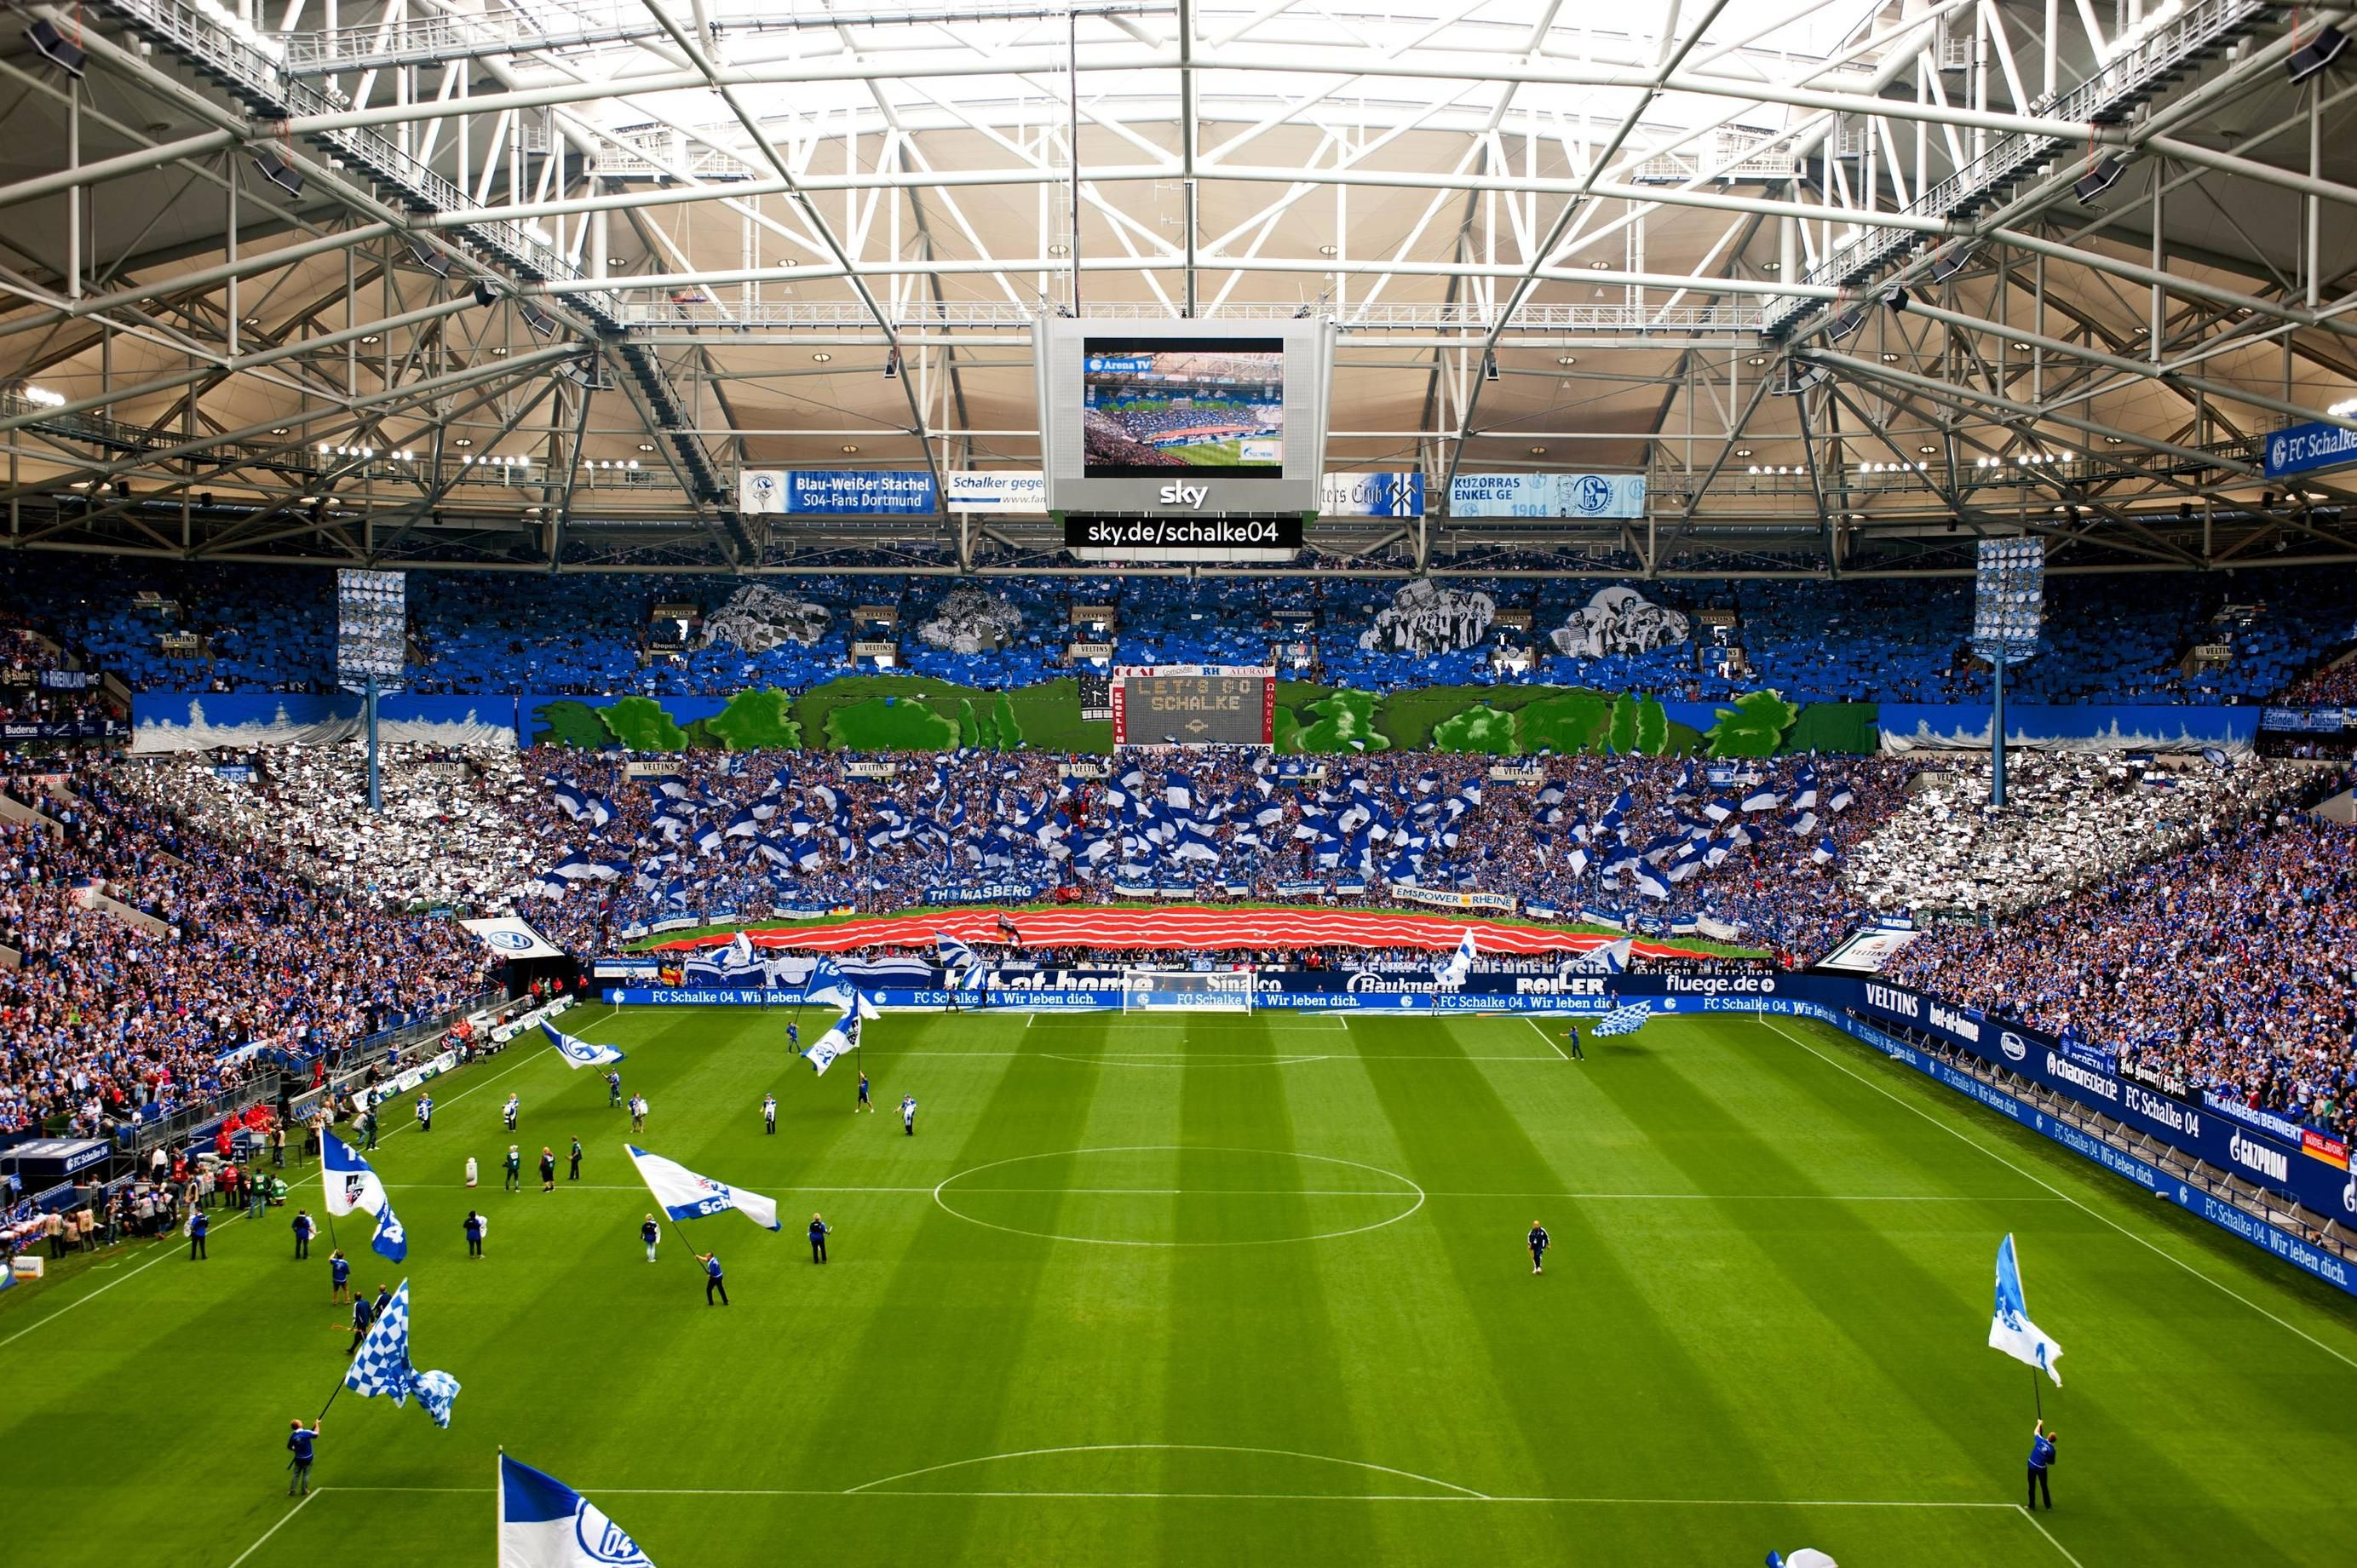 schalke stadion gelsenkirchen 9ine schalke04 pinterest. Black Bedroom Furniture Sets. Home Design Ideas